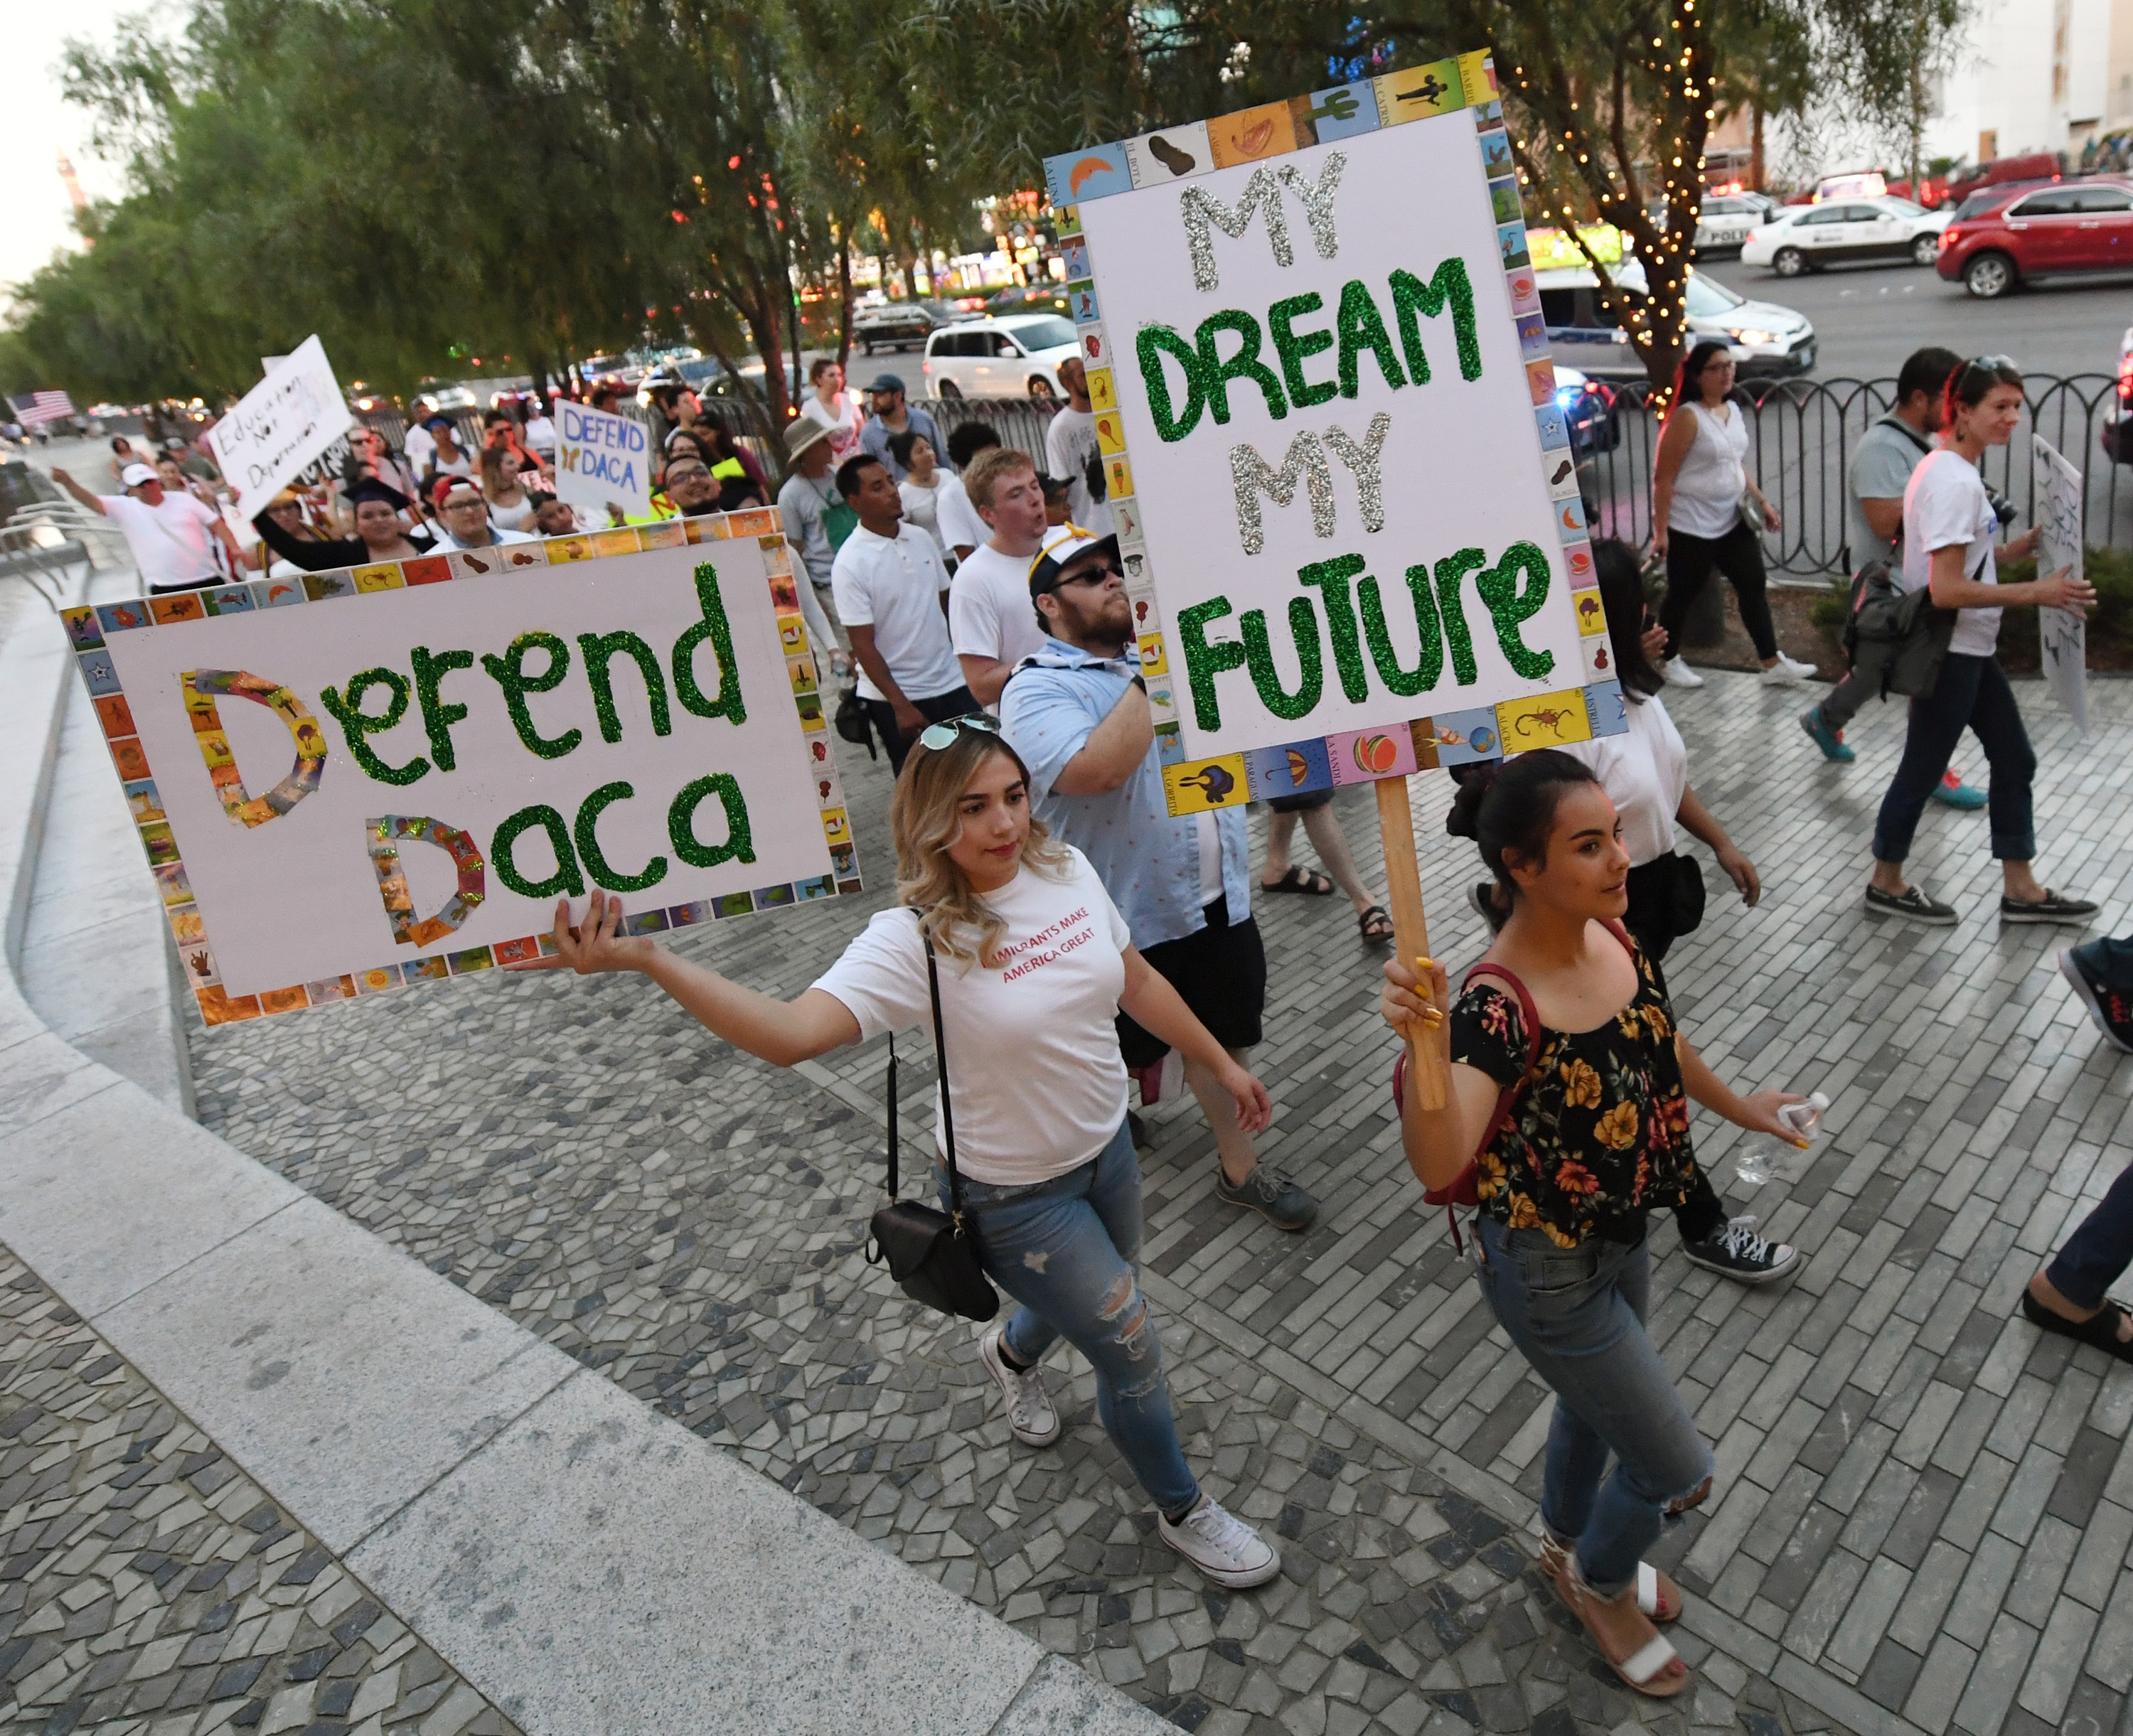 Immigrants and supporters march on the Las Vegas Strip during a 'We Rise for the Dream' rally to oppose U.S. President Donald Trump's order to end DACA on September 10, 2017, in Las Vegas, Nevada. The Obama-era Deferred Action for Childhood Arrivals program protects young immigrants who grew up in the U.S. after arriving with their undocumented parents from deportation to a foreign country. Trump's executive order removes protection for about 800,000 current 'dreamers,' about 13,000 of whom live in Nevada. Congress has the option to replace the policy with legislation before DACA expires on March 5, 2018 (Getty Images)